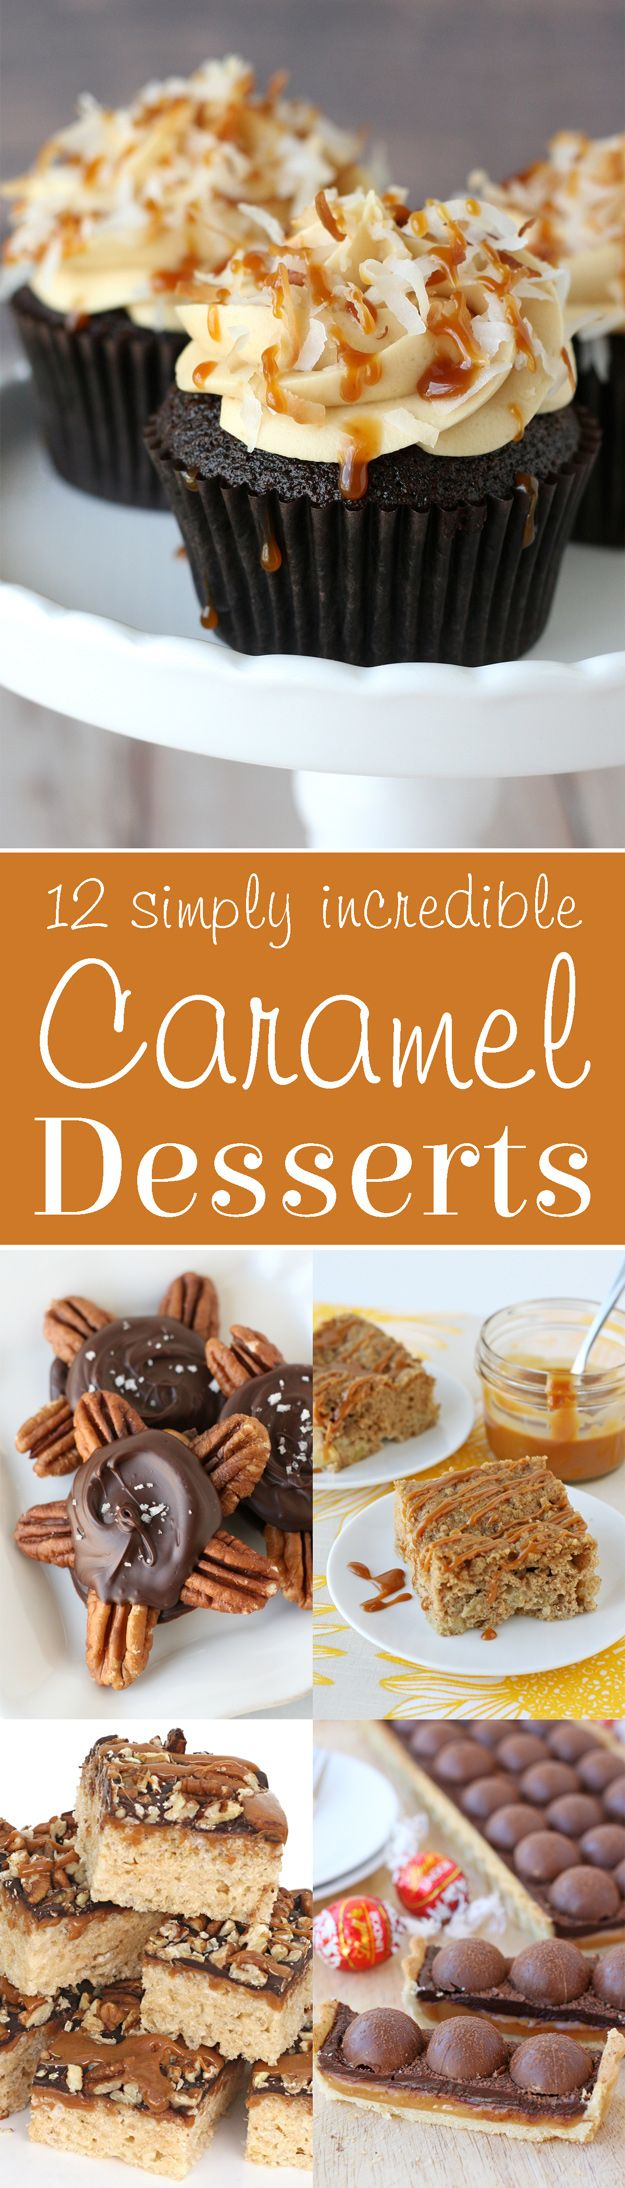 12 Incredible Caramel Dessert Recipes